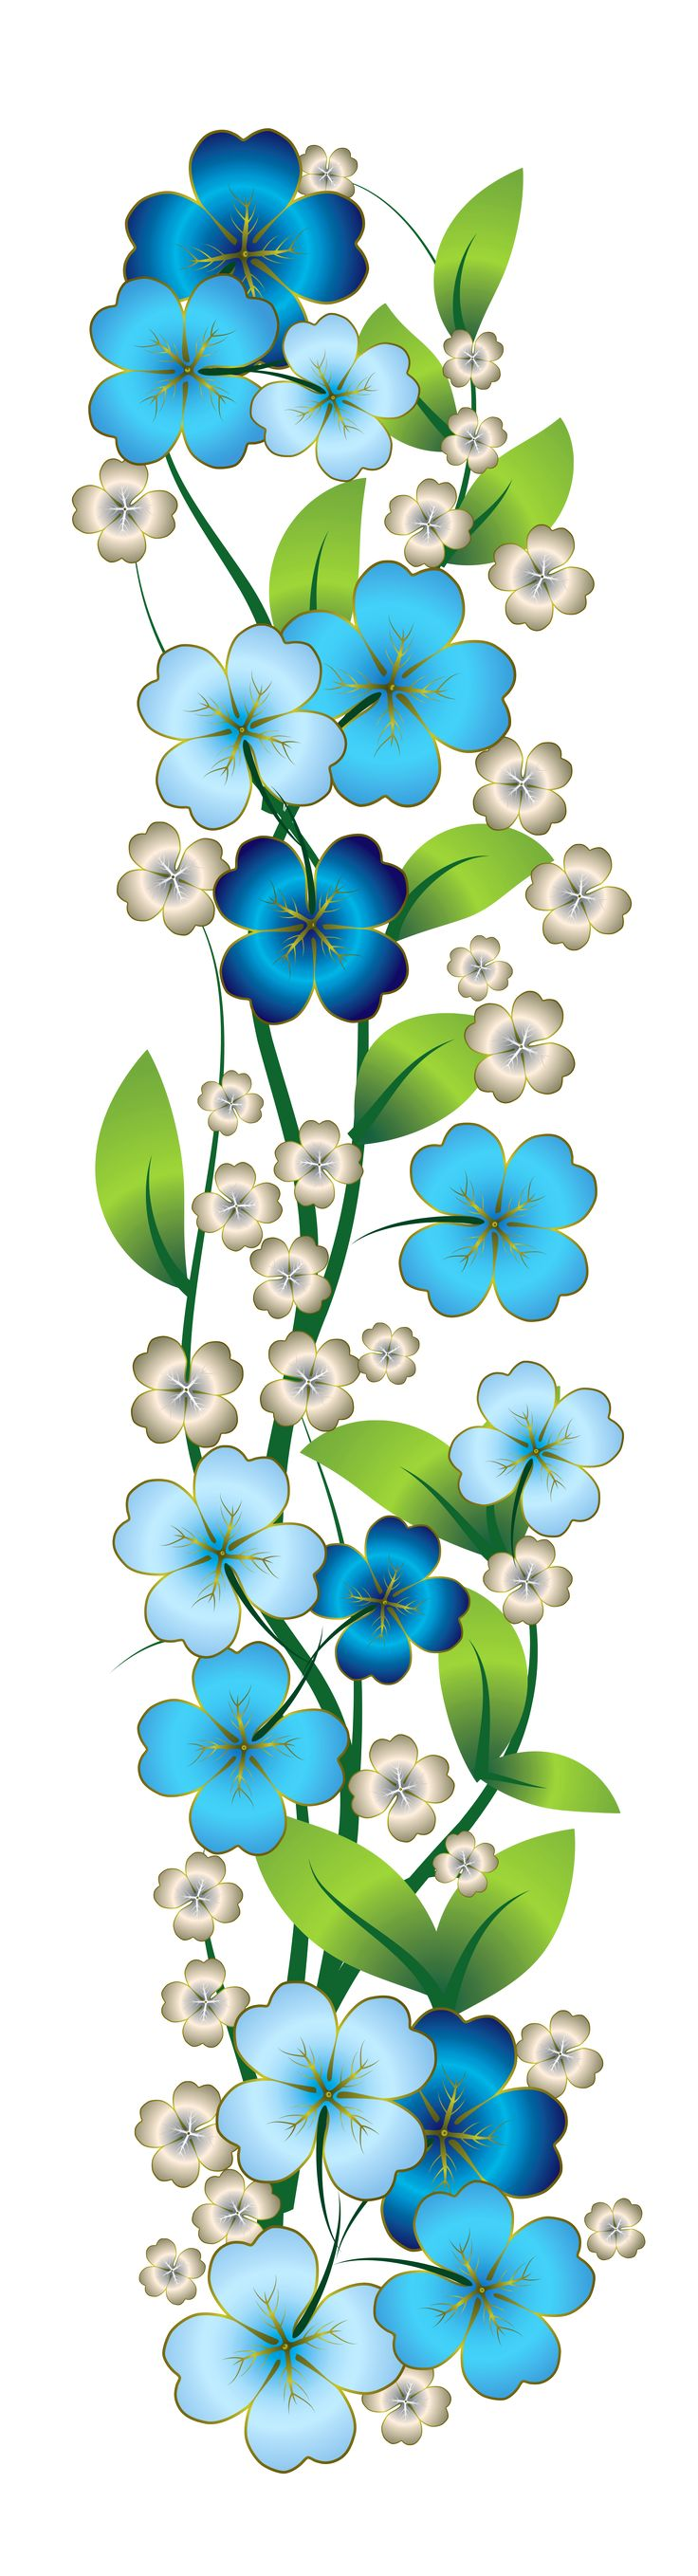 17 Best ideas about Flower Border Clipart on Pinterest | Floral ...